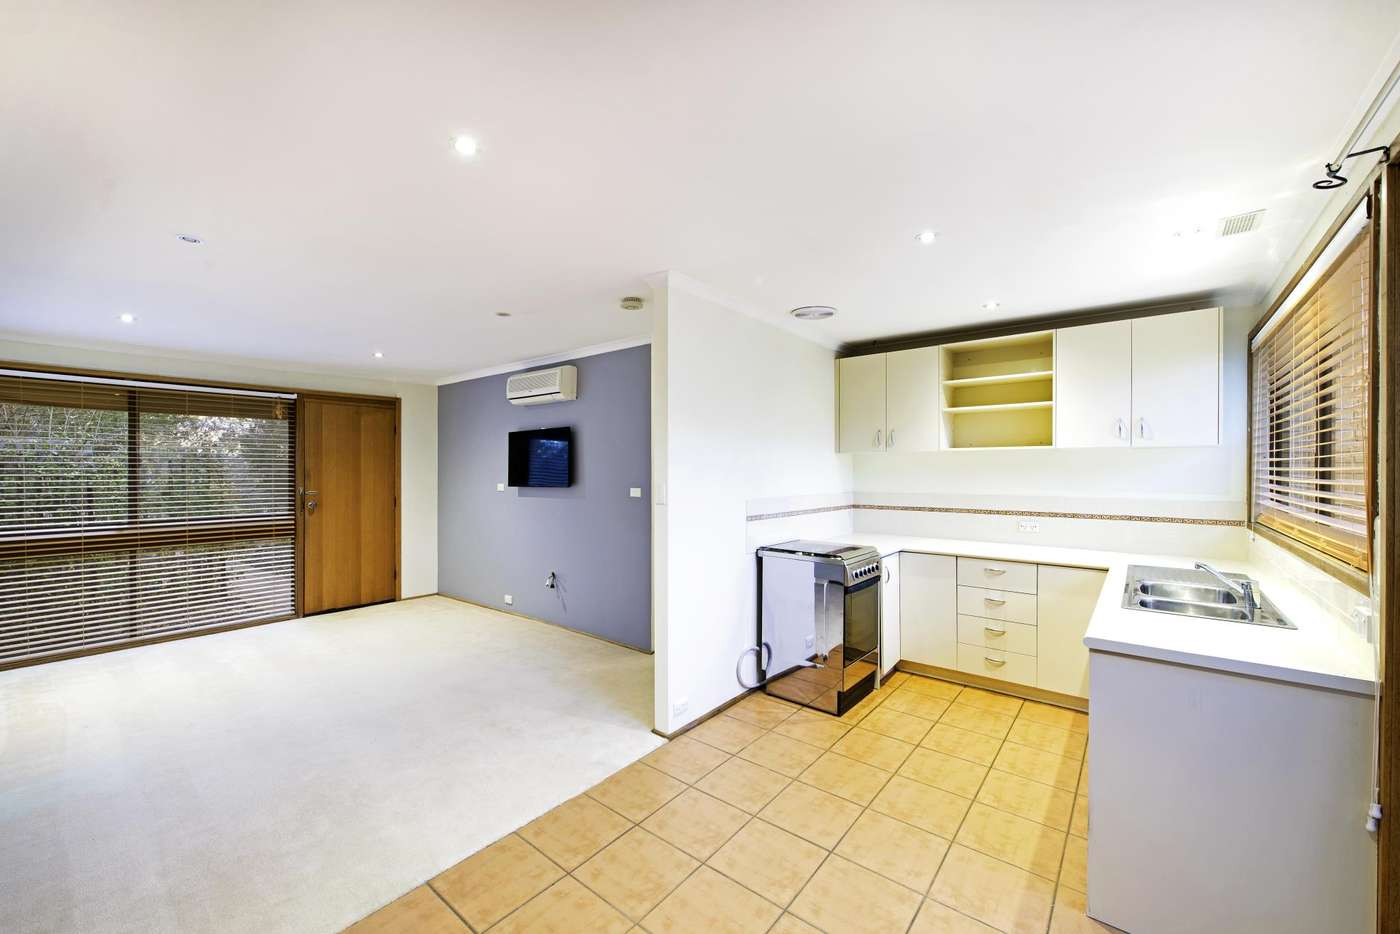 Fifth view of Homely townhouse listing, 55 Canopus Crescent, Giralang ACT 2617